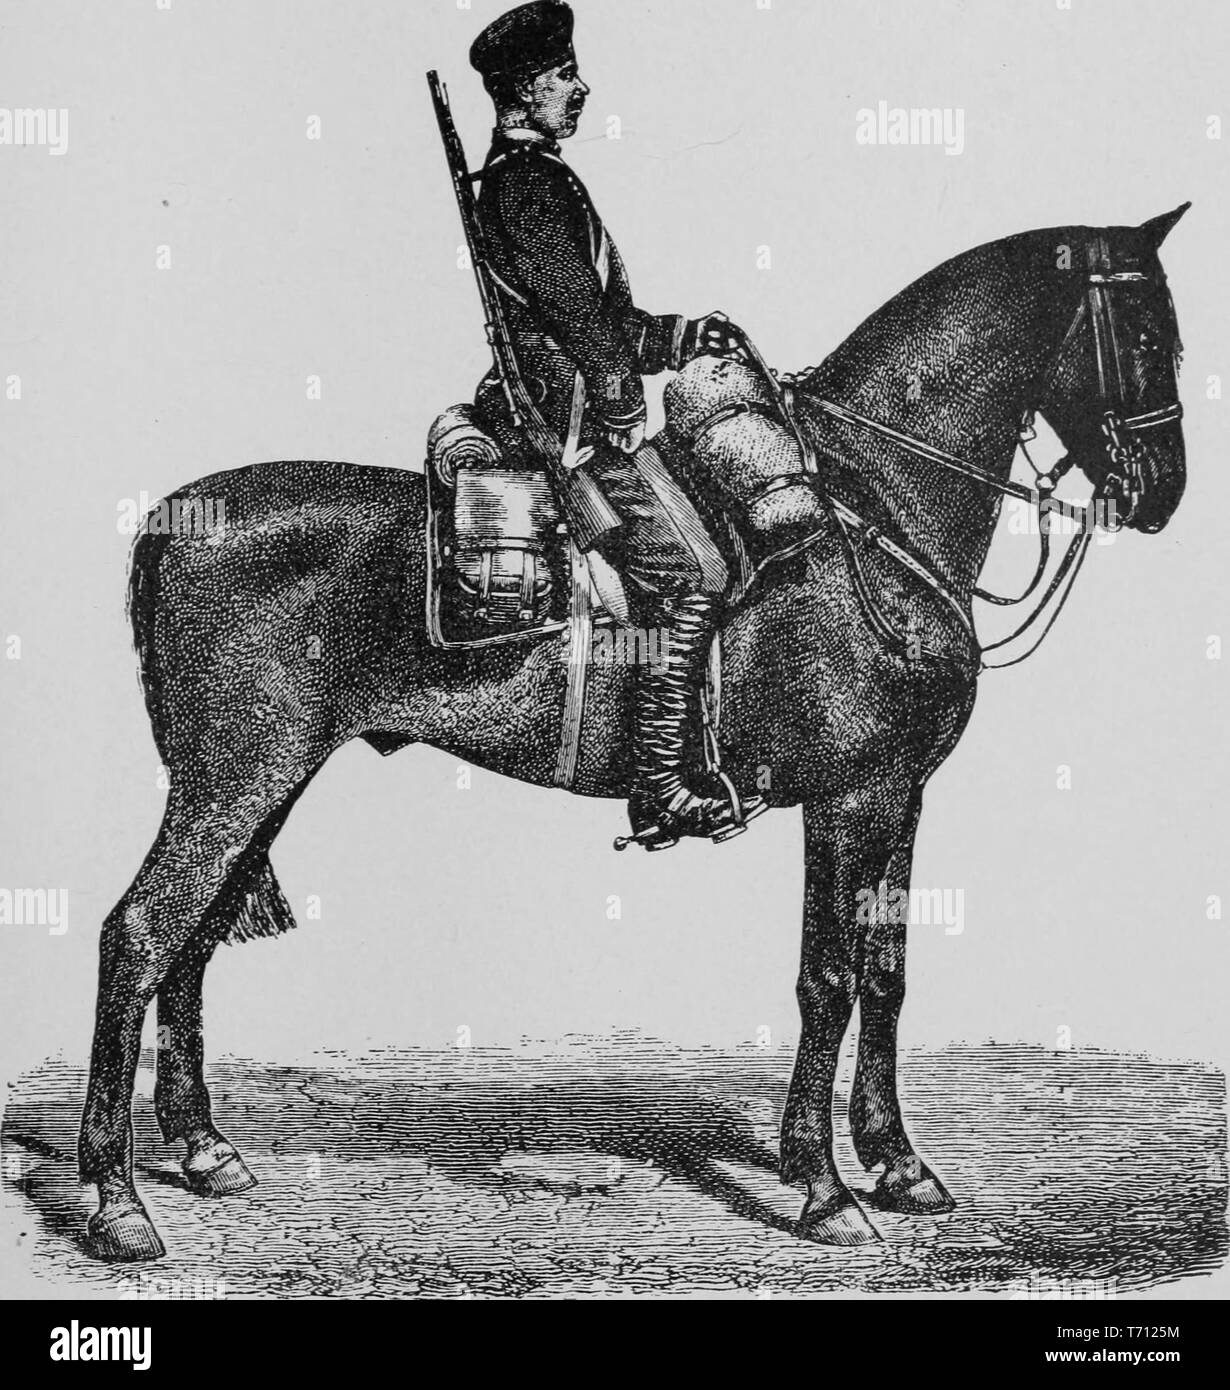 Engraving of a soldier on a horse, 'Russian Dragon', from the book 'Horses, saddles, and bridles', 1906. Courtesy Internet Archive. () - Stock Image